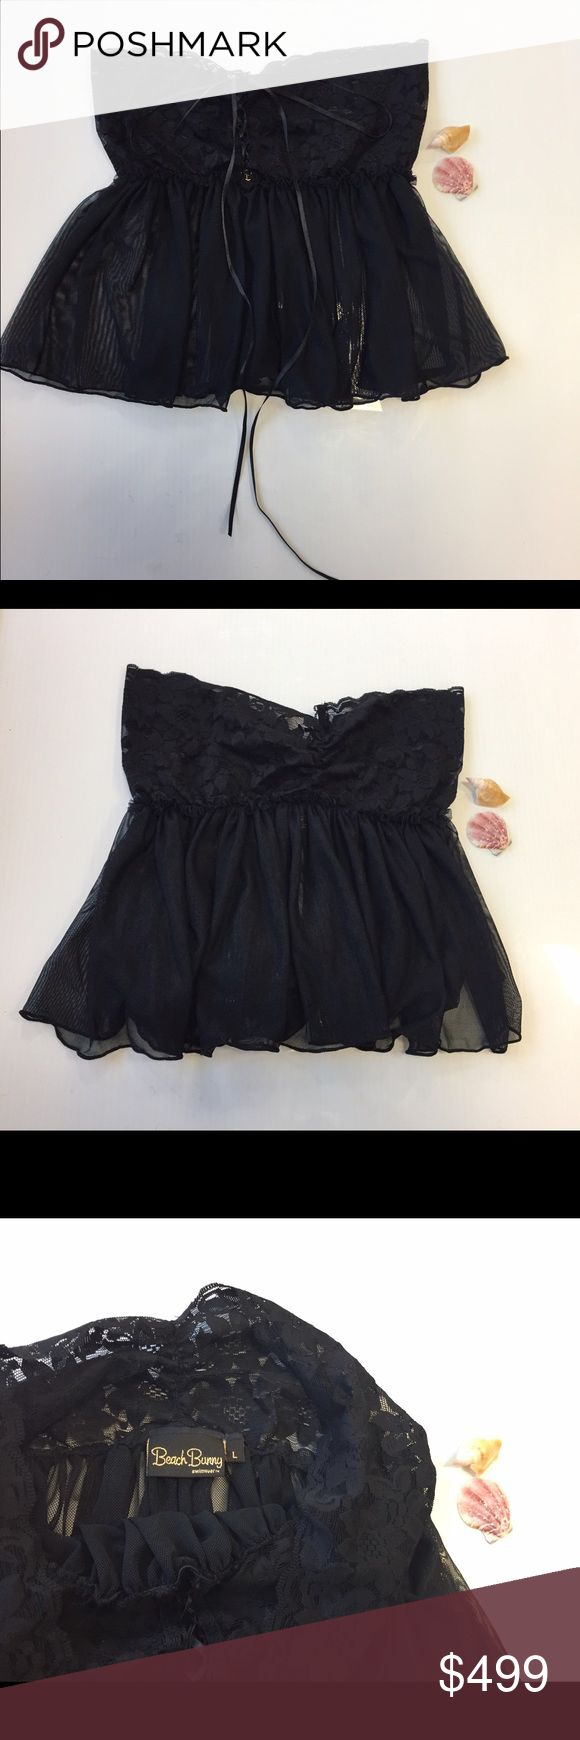 Beach bunny black lace skirt size large RARE NEW Beach bunny black lace skirt size large RARE NEW without tags Beach Bunny Swim Coverups